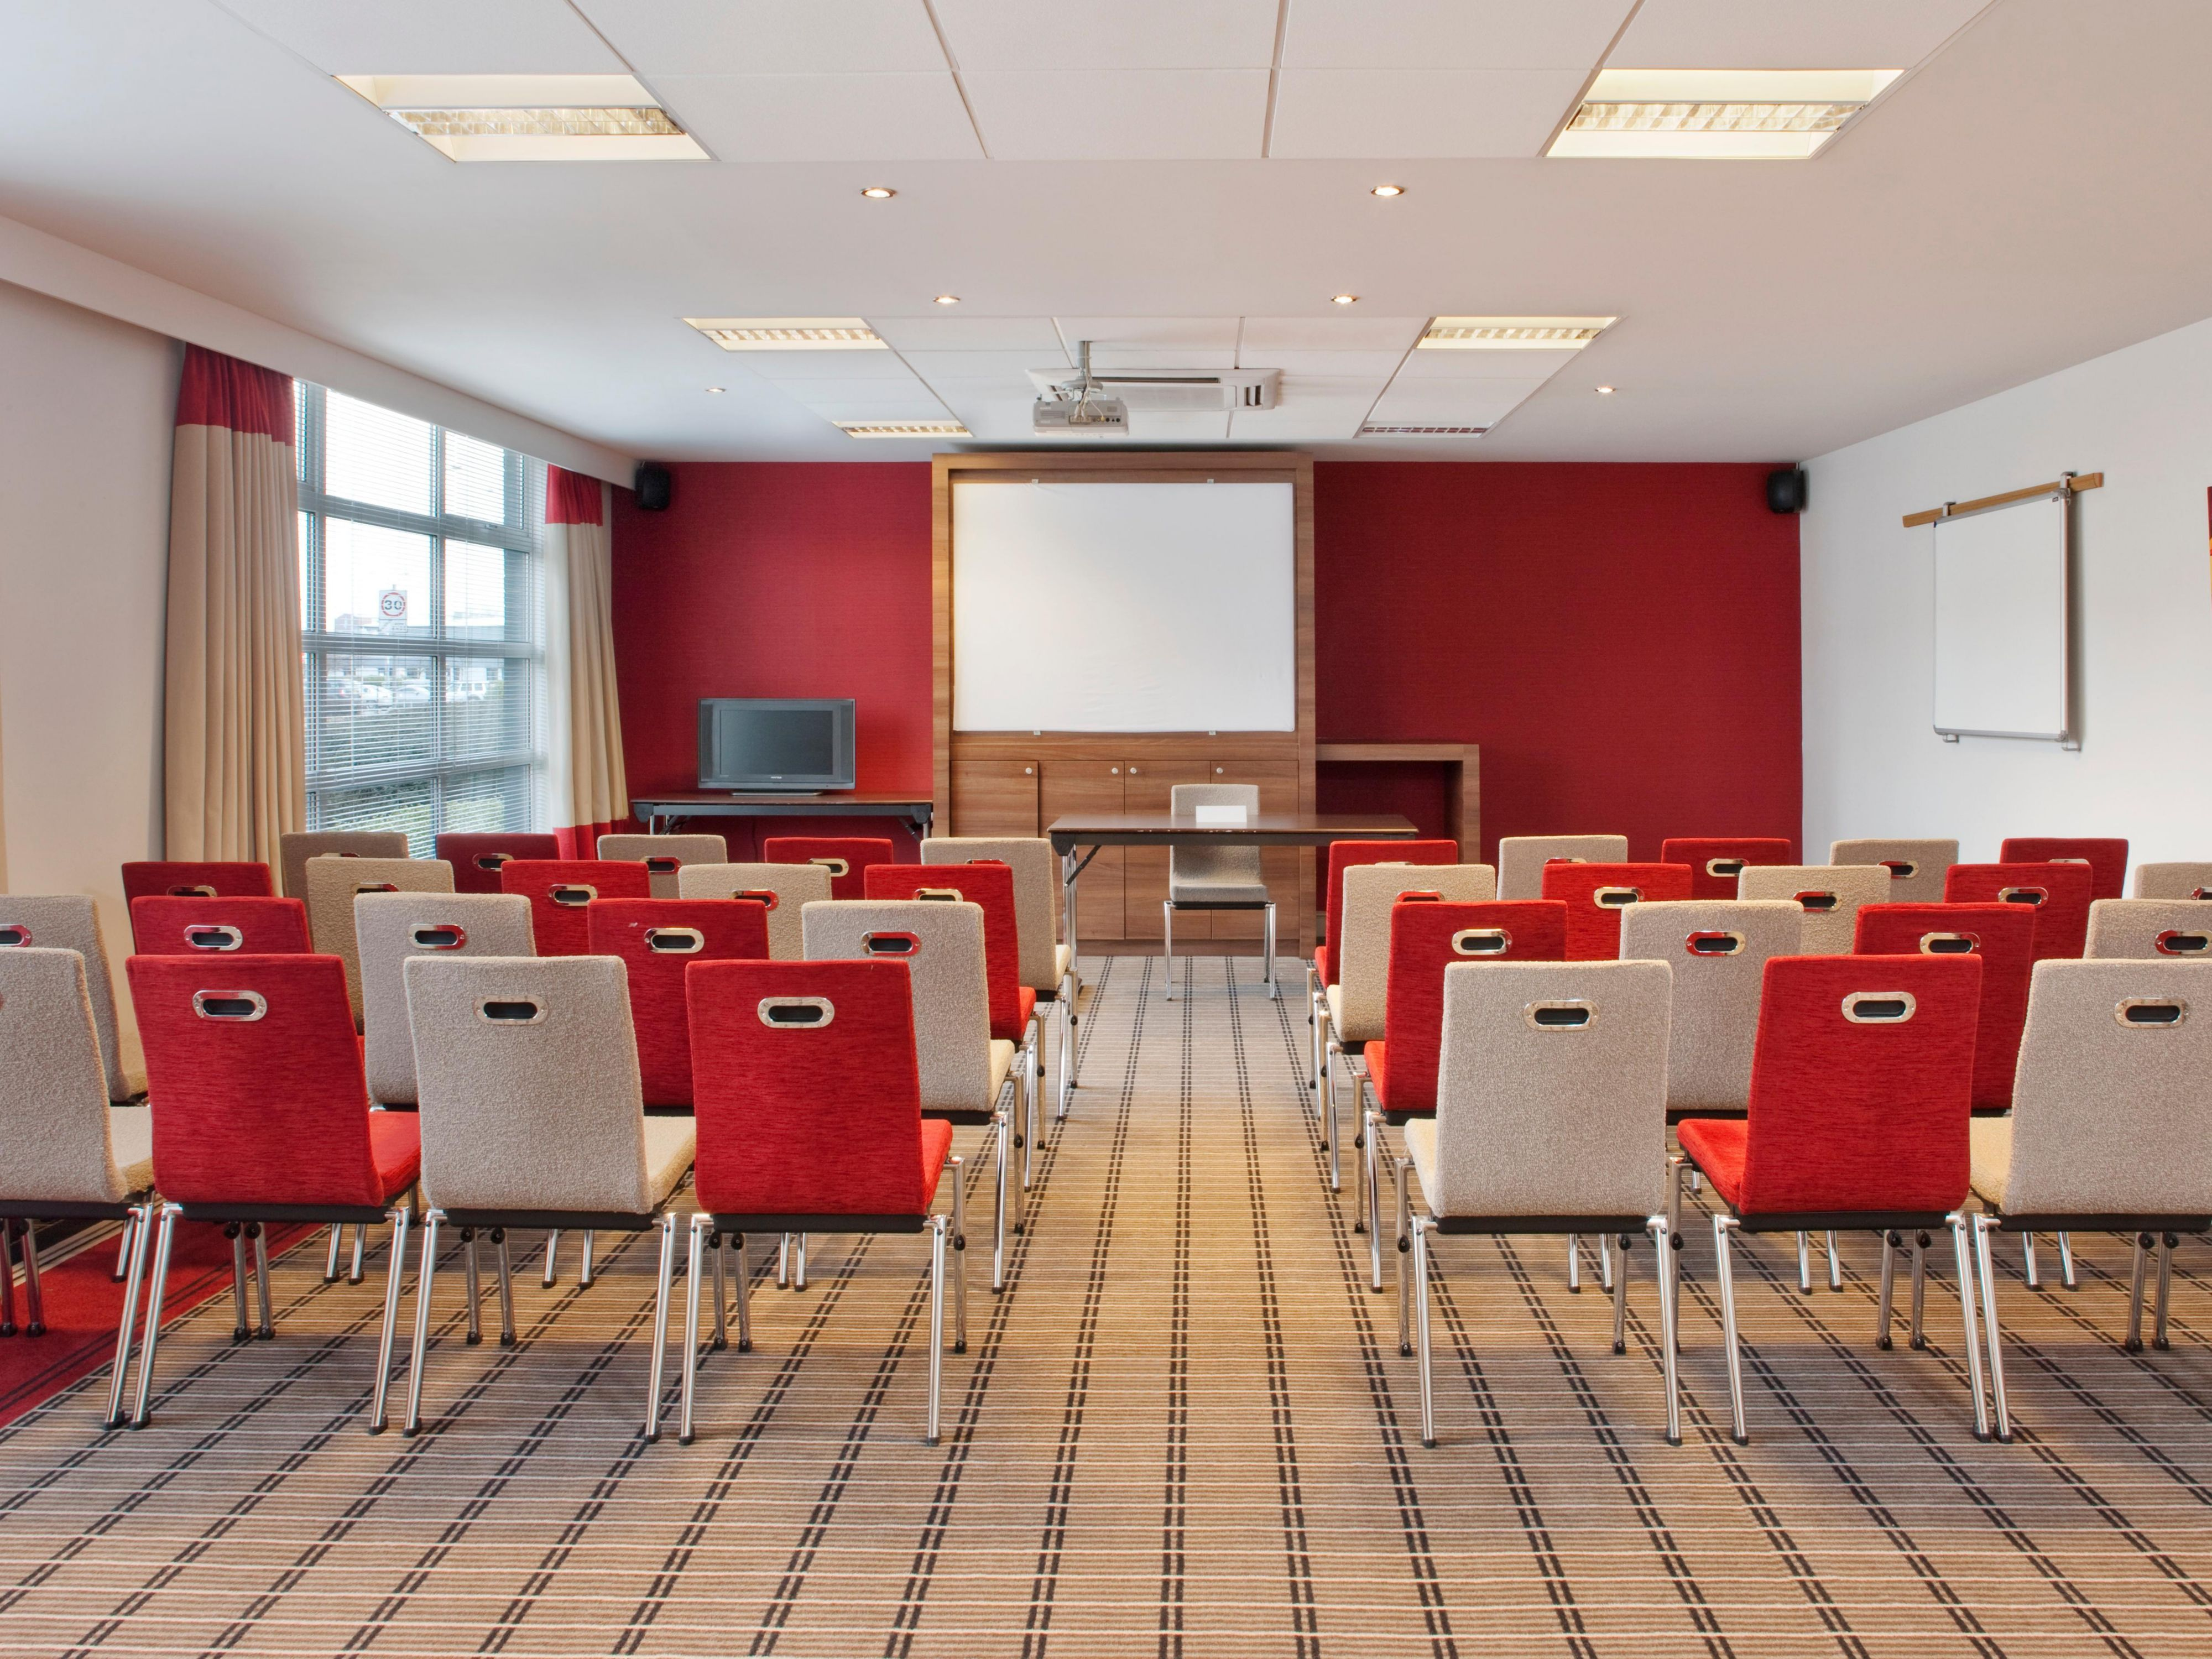 Meeting Rooms at the Holiday Inn Express Glasgow Airport hotel